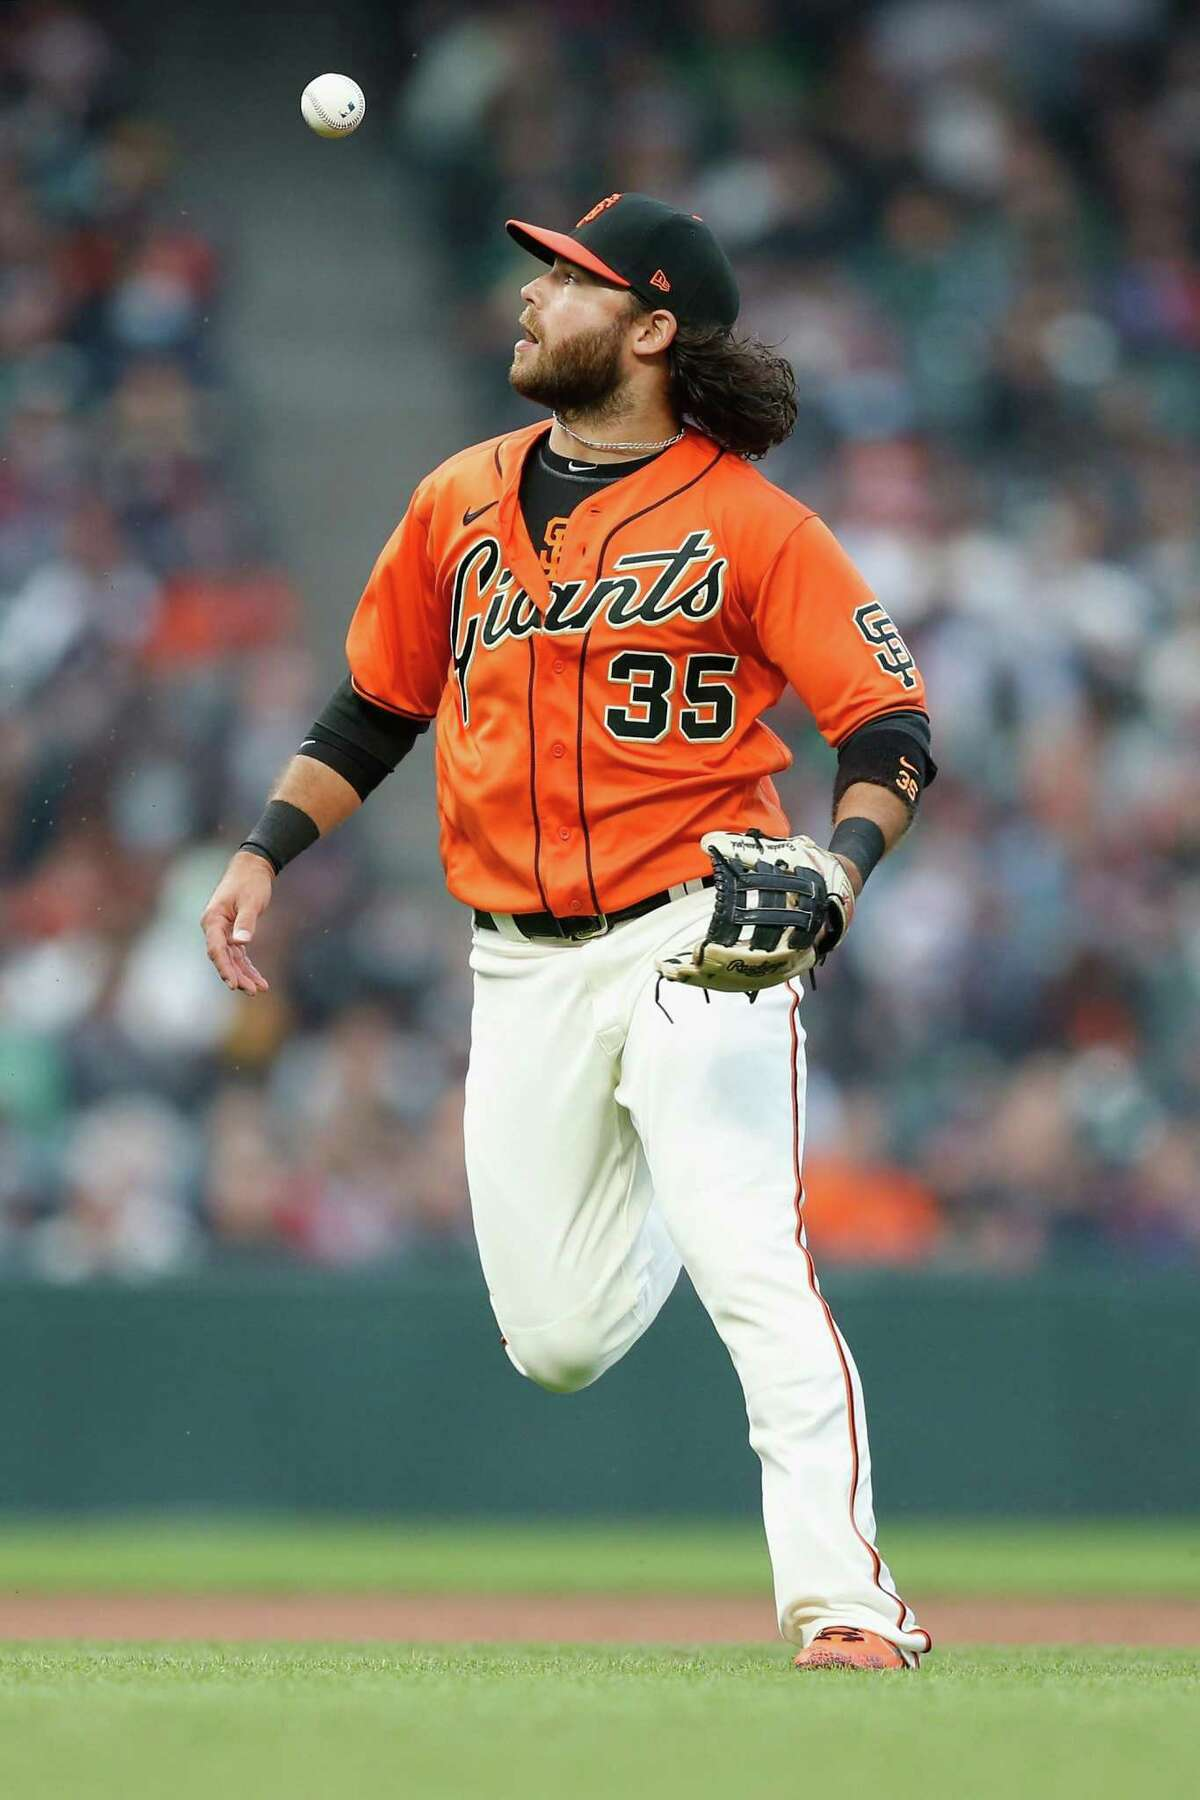 SAN FRANCISCO, CALIFORNIA - JUNE 25: Brandon Crawford #35 of the San Francisco Giants is unable to field the ball hit by Matt Chapman #26 of the Oakland Athletics in the top of the third inning at Oracle Park on June 25, 2021 in San Francisco, California. (Photo by Lachlan Cunningham/Getty Images)